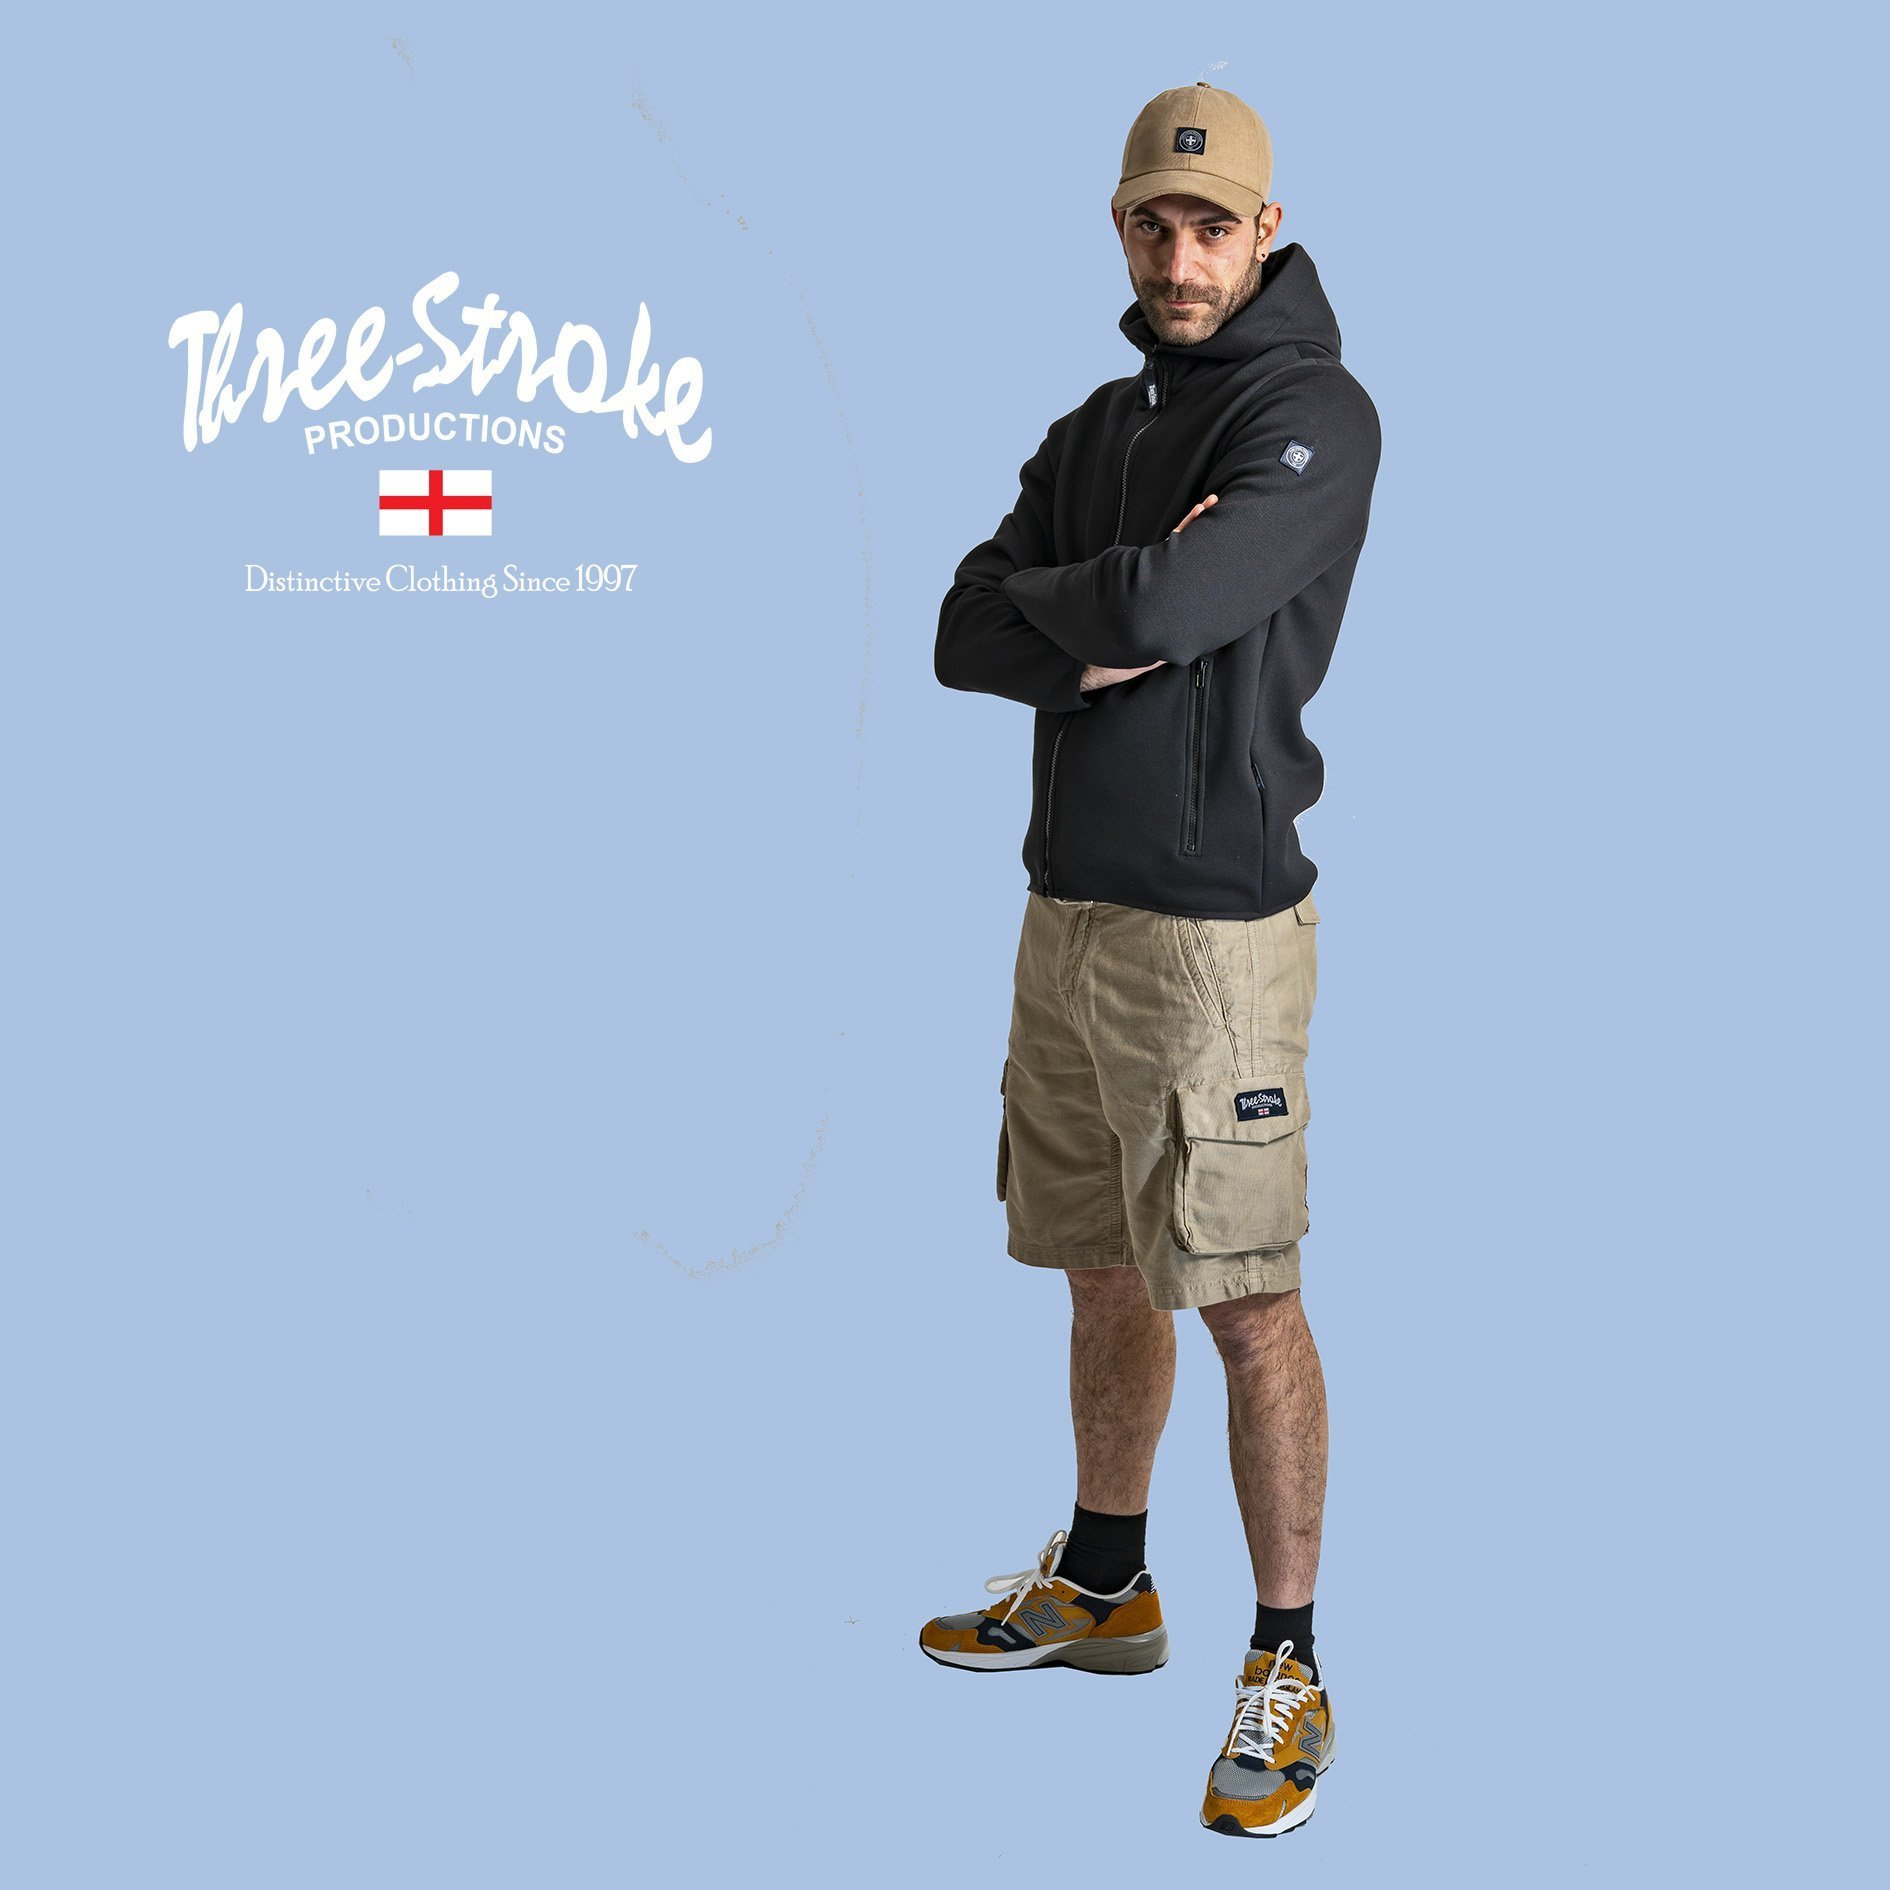 victor baseball cap uniform jacket and combat shorts by Three Stroke Productions